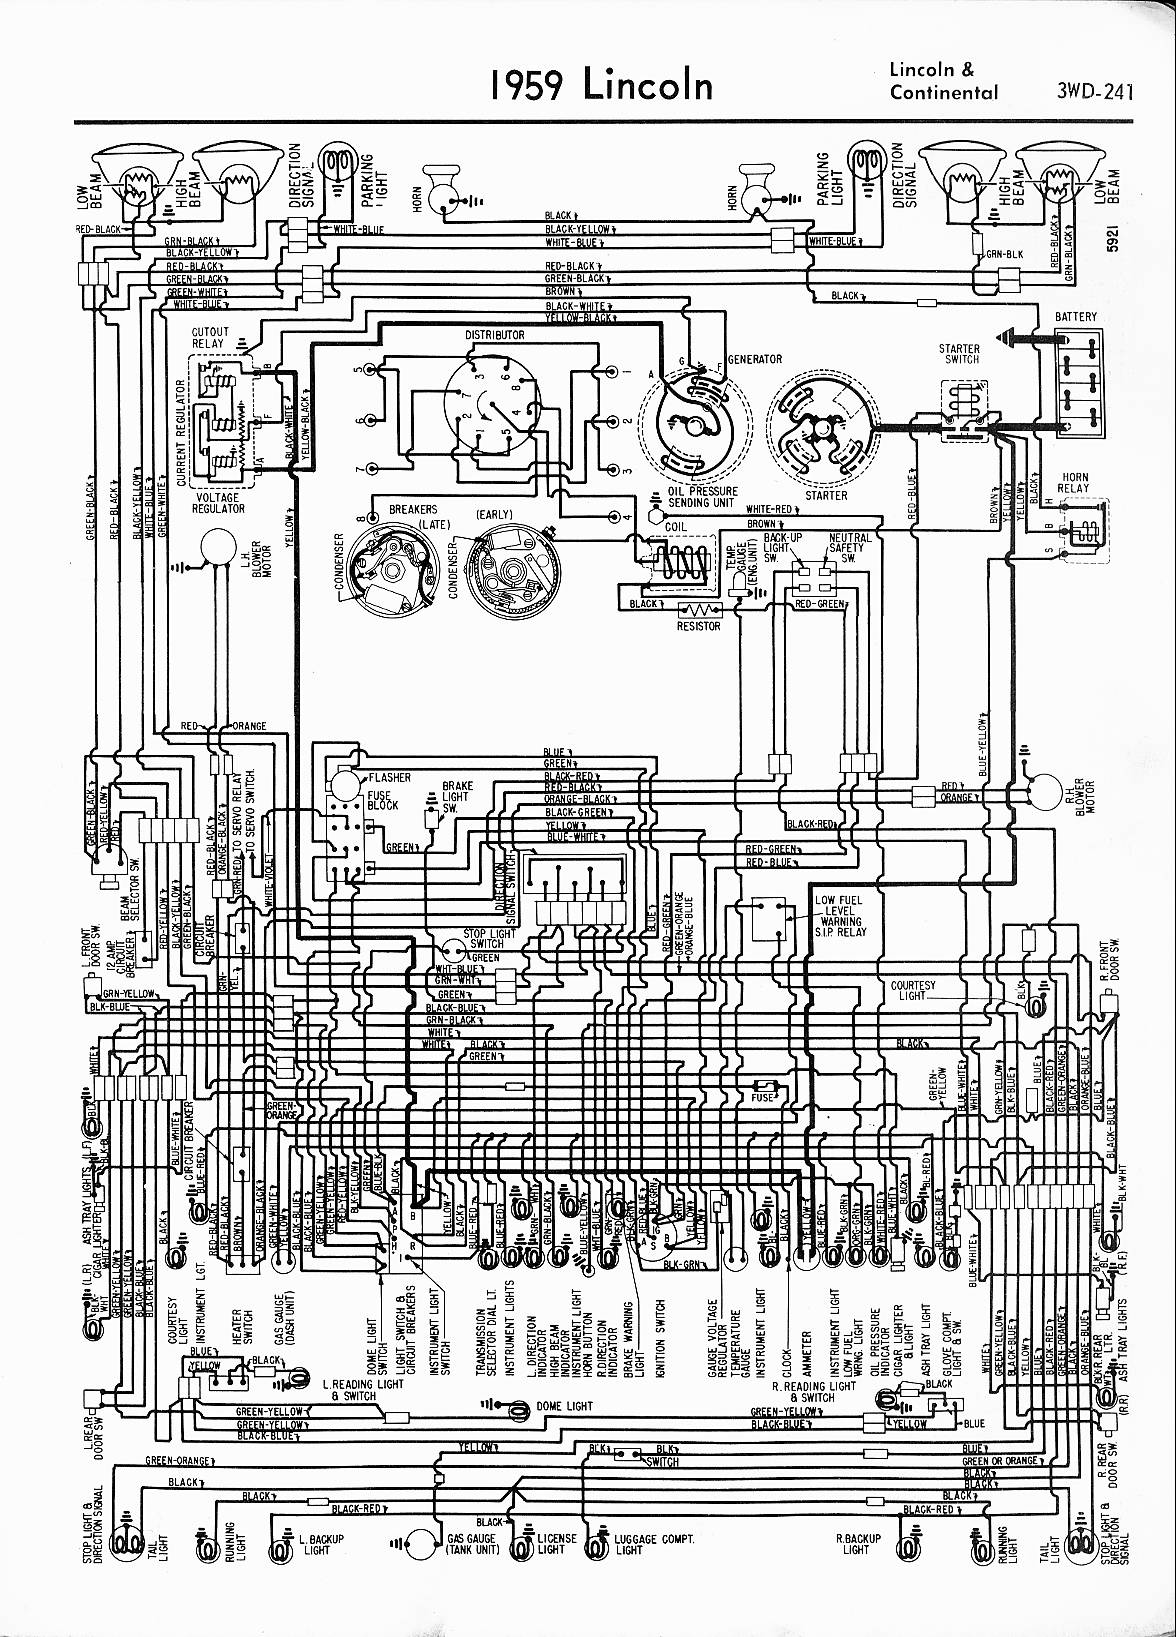 1966 Ford Pick Up Engine Wiring Diagram Real 66 Truck F250 Alternator For Lincoln Continental Schematics Rh Caltech Ctp Com F100